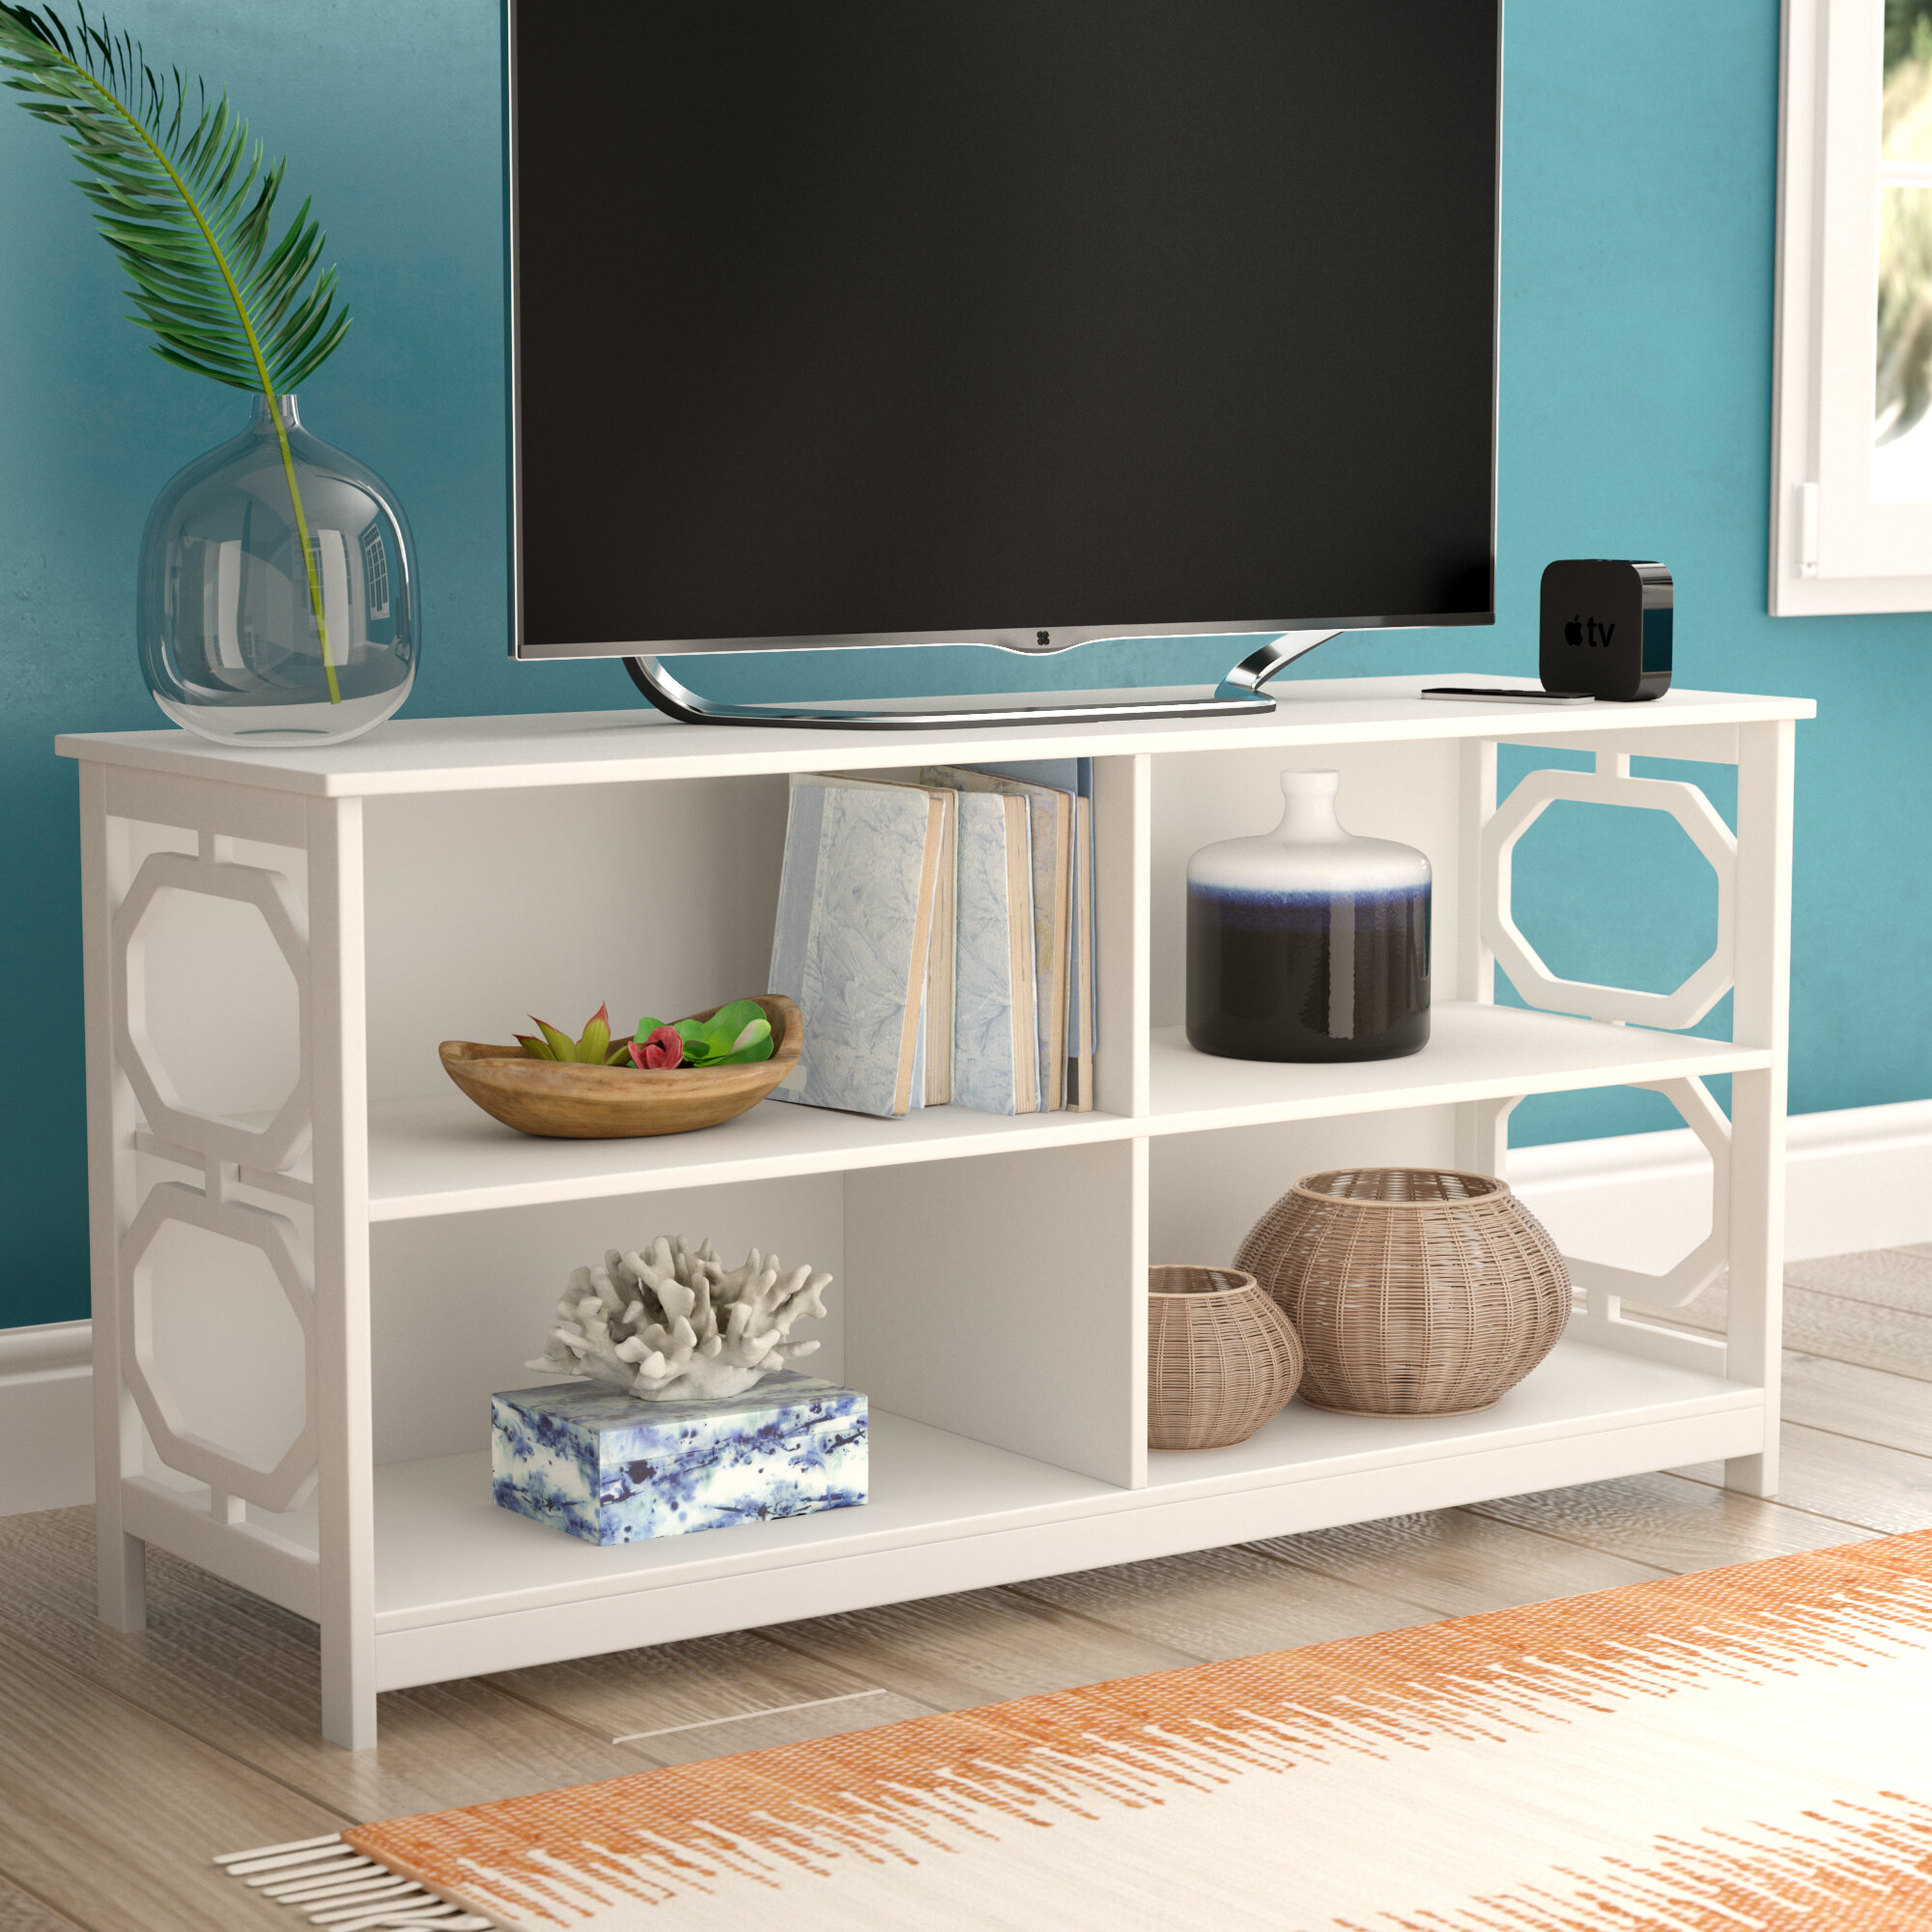 Beachcrest Home Country Walk Tv Stand For Tvs Up To 48 Reviews Wayfair